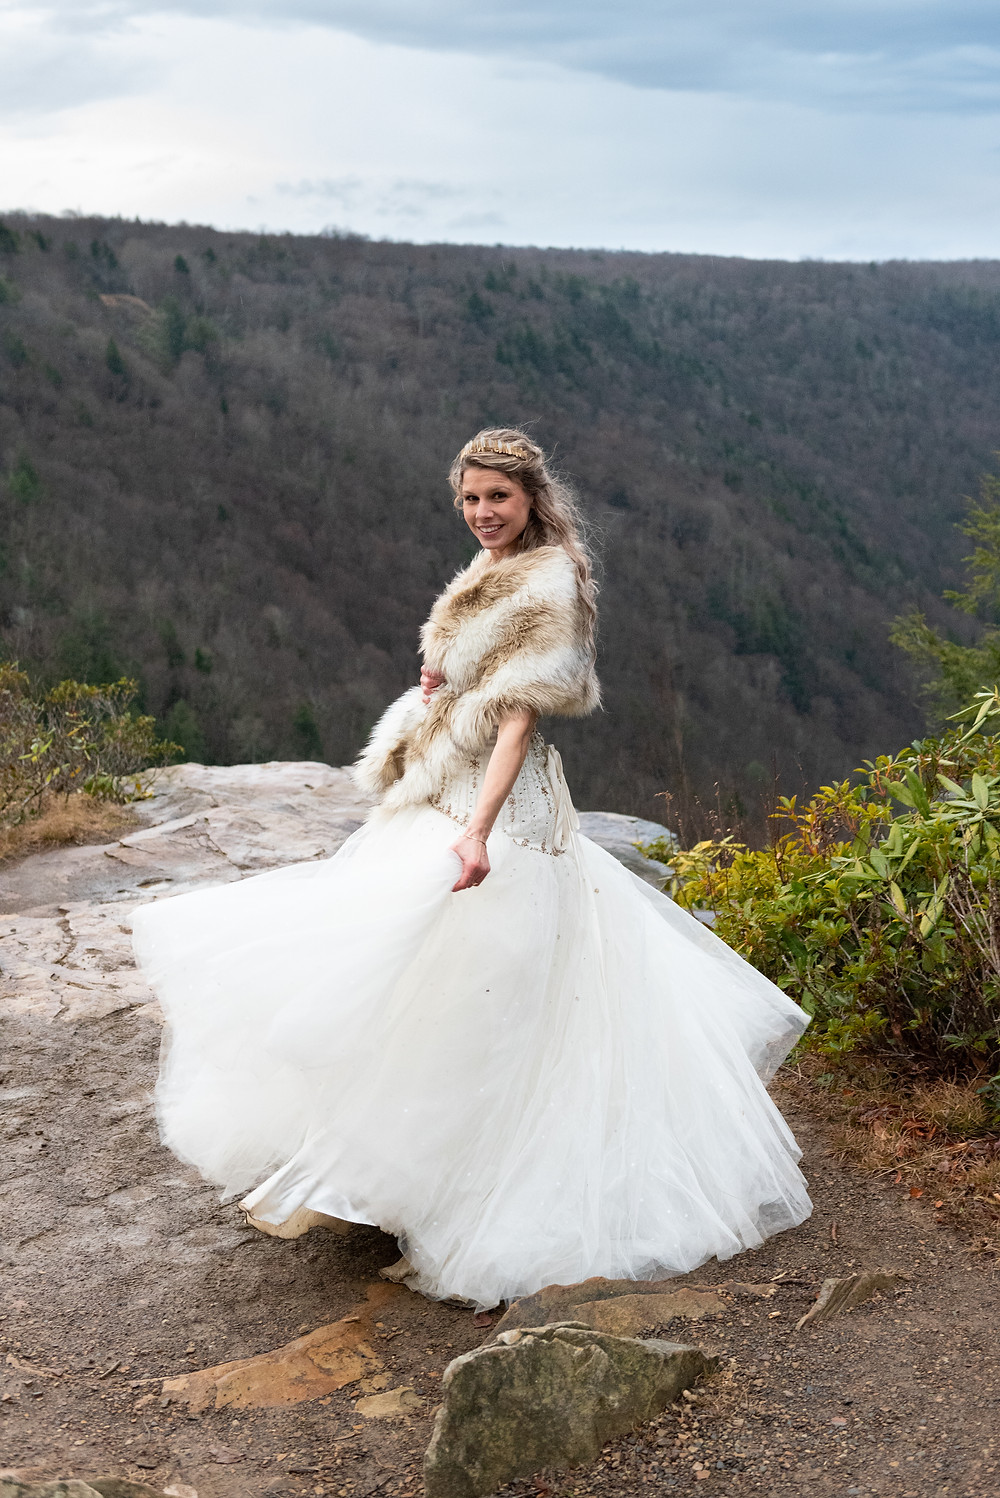 Bride spinning in her dress with the rolling hills of WV in the background